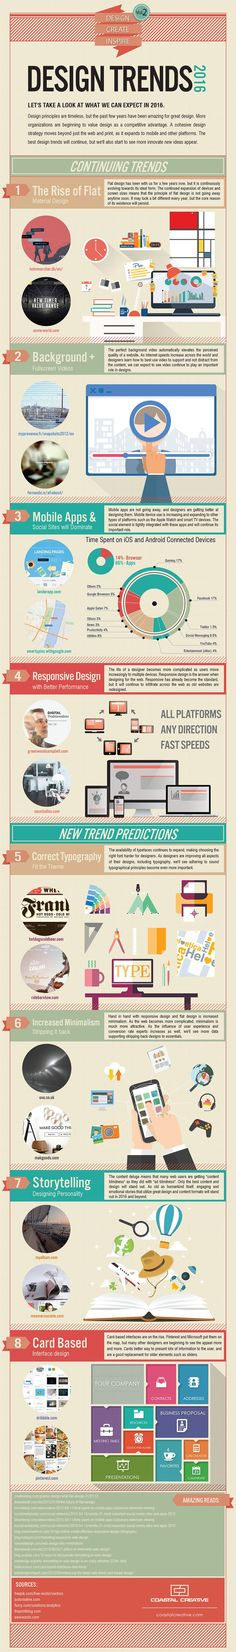 8 #WebDesign Trends That Are Bound to Be Huge in 2016 [#infographic]. Web Design. Opus Online.